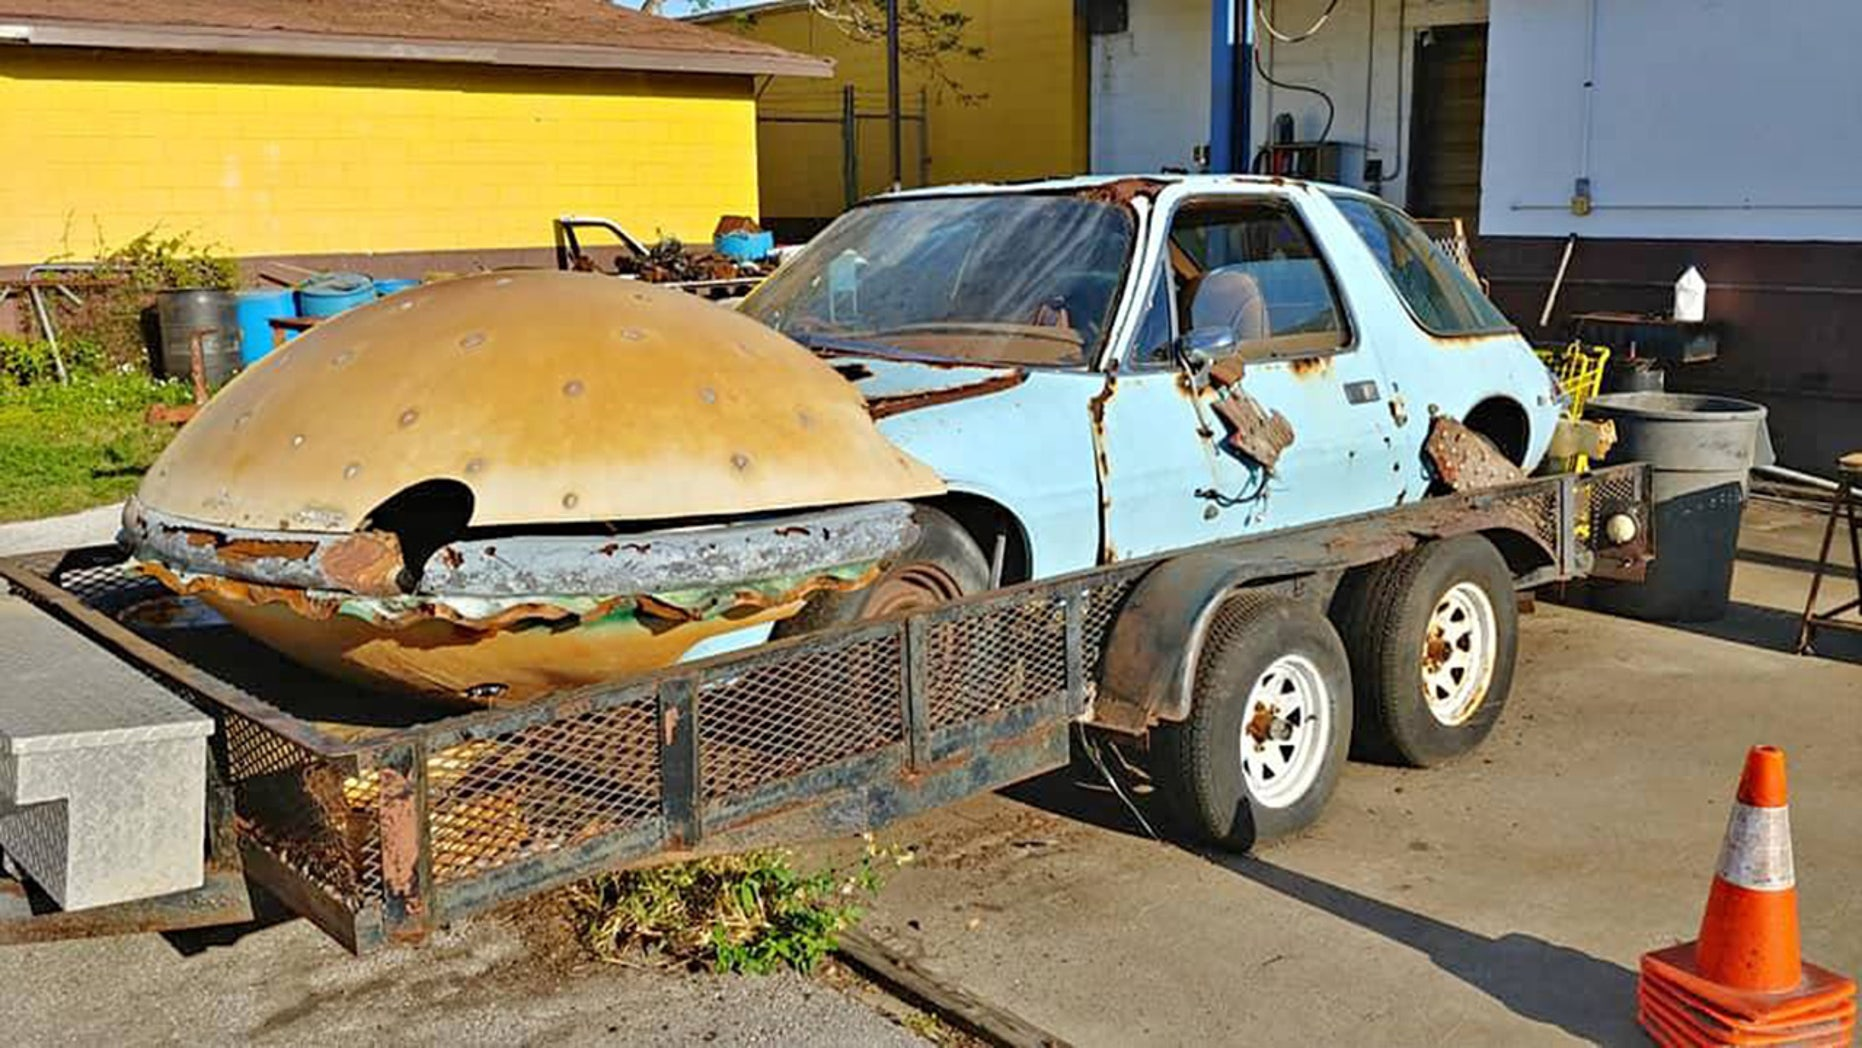 Good Car Movies: The Bizarre Car From 'Good Burger' Just Showed Up For Sale